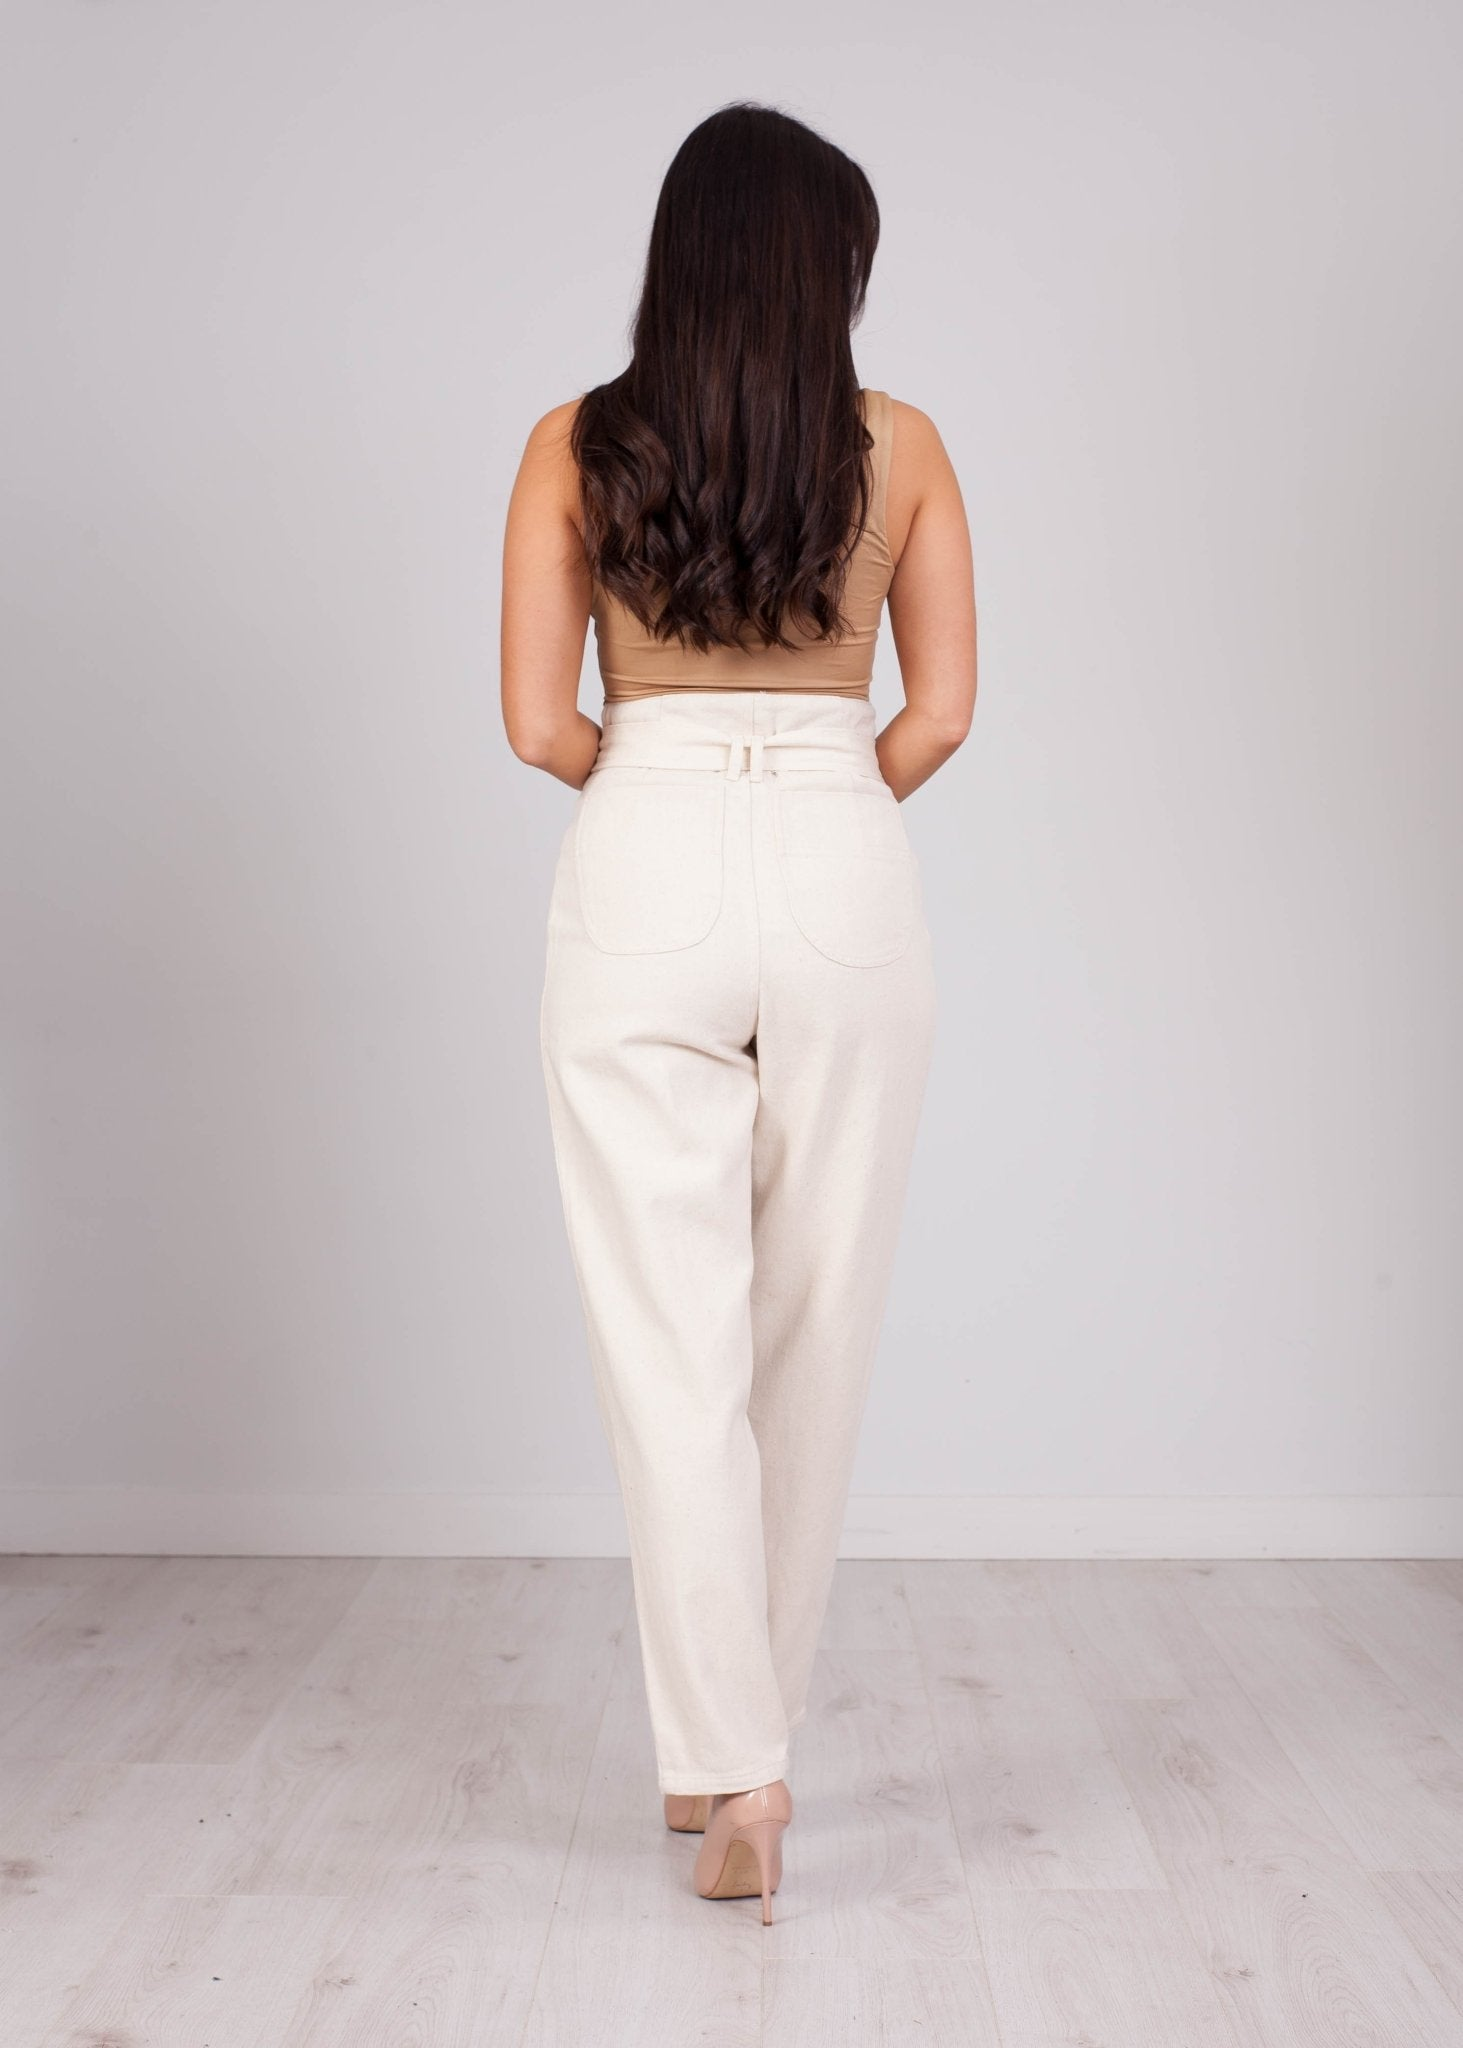 Poppy Cream High Waisted Jean - The Walk in Wardrobe